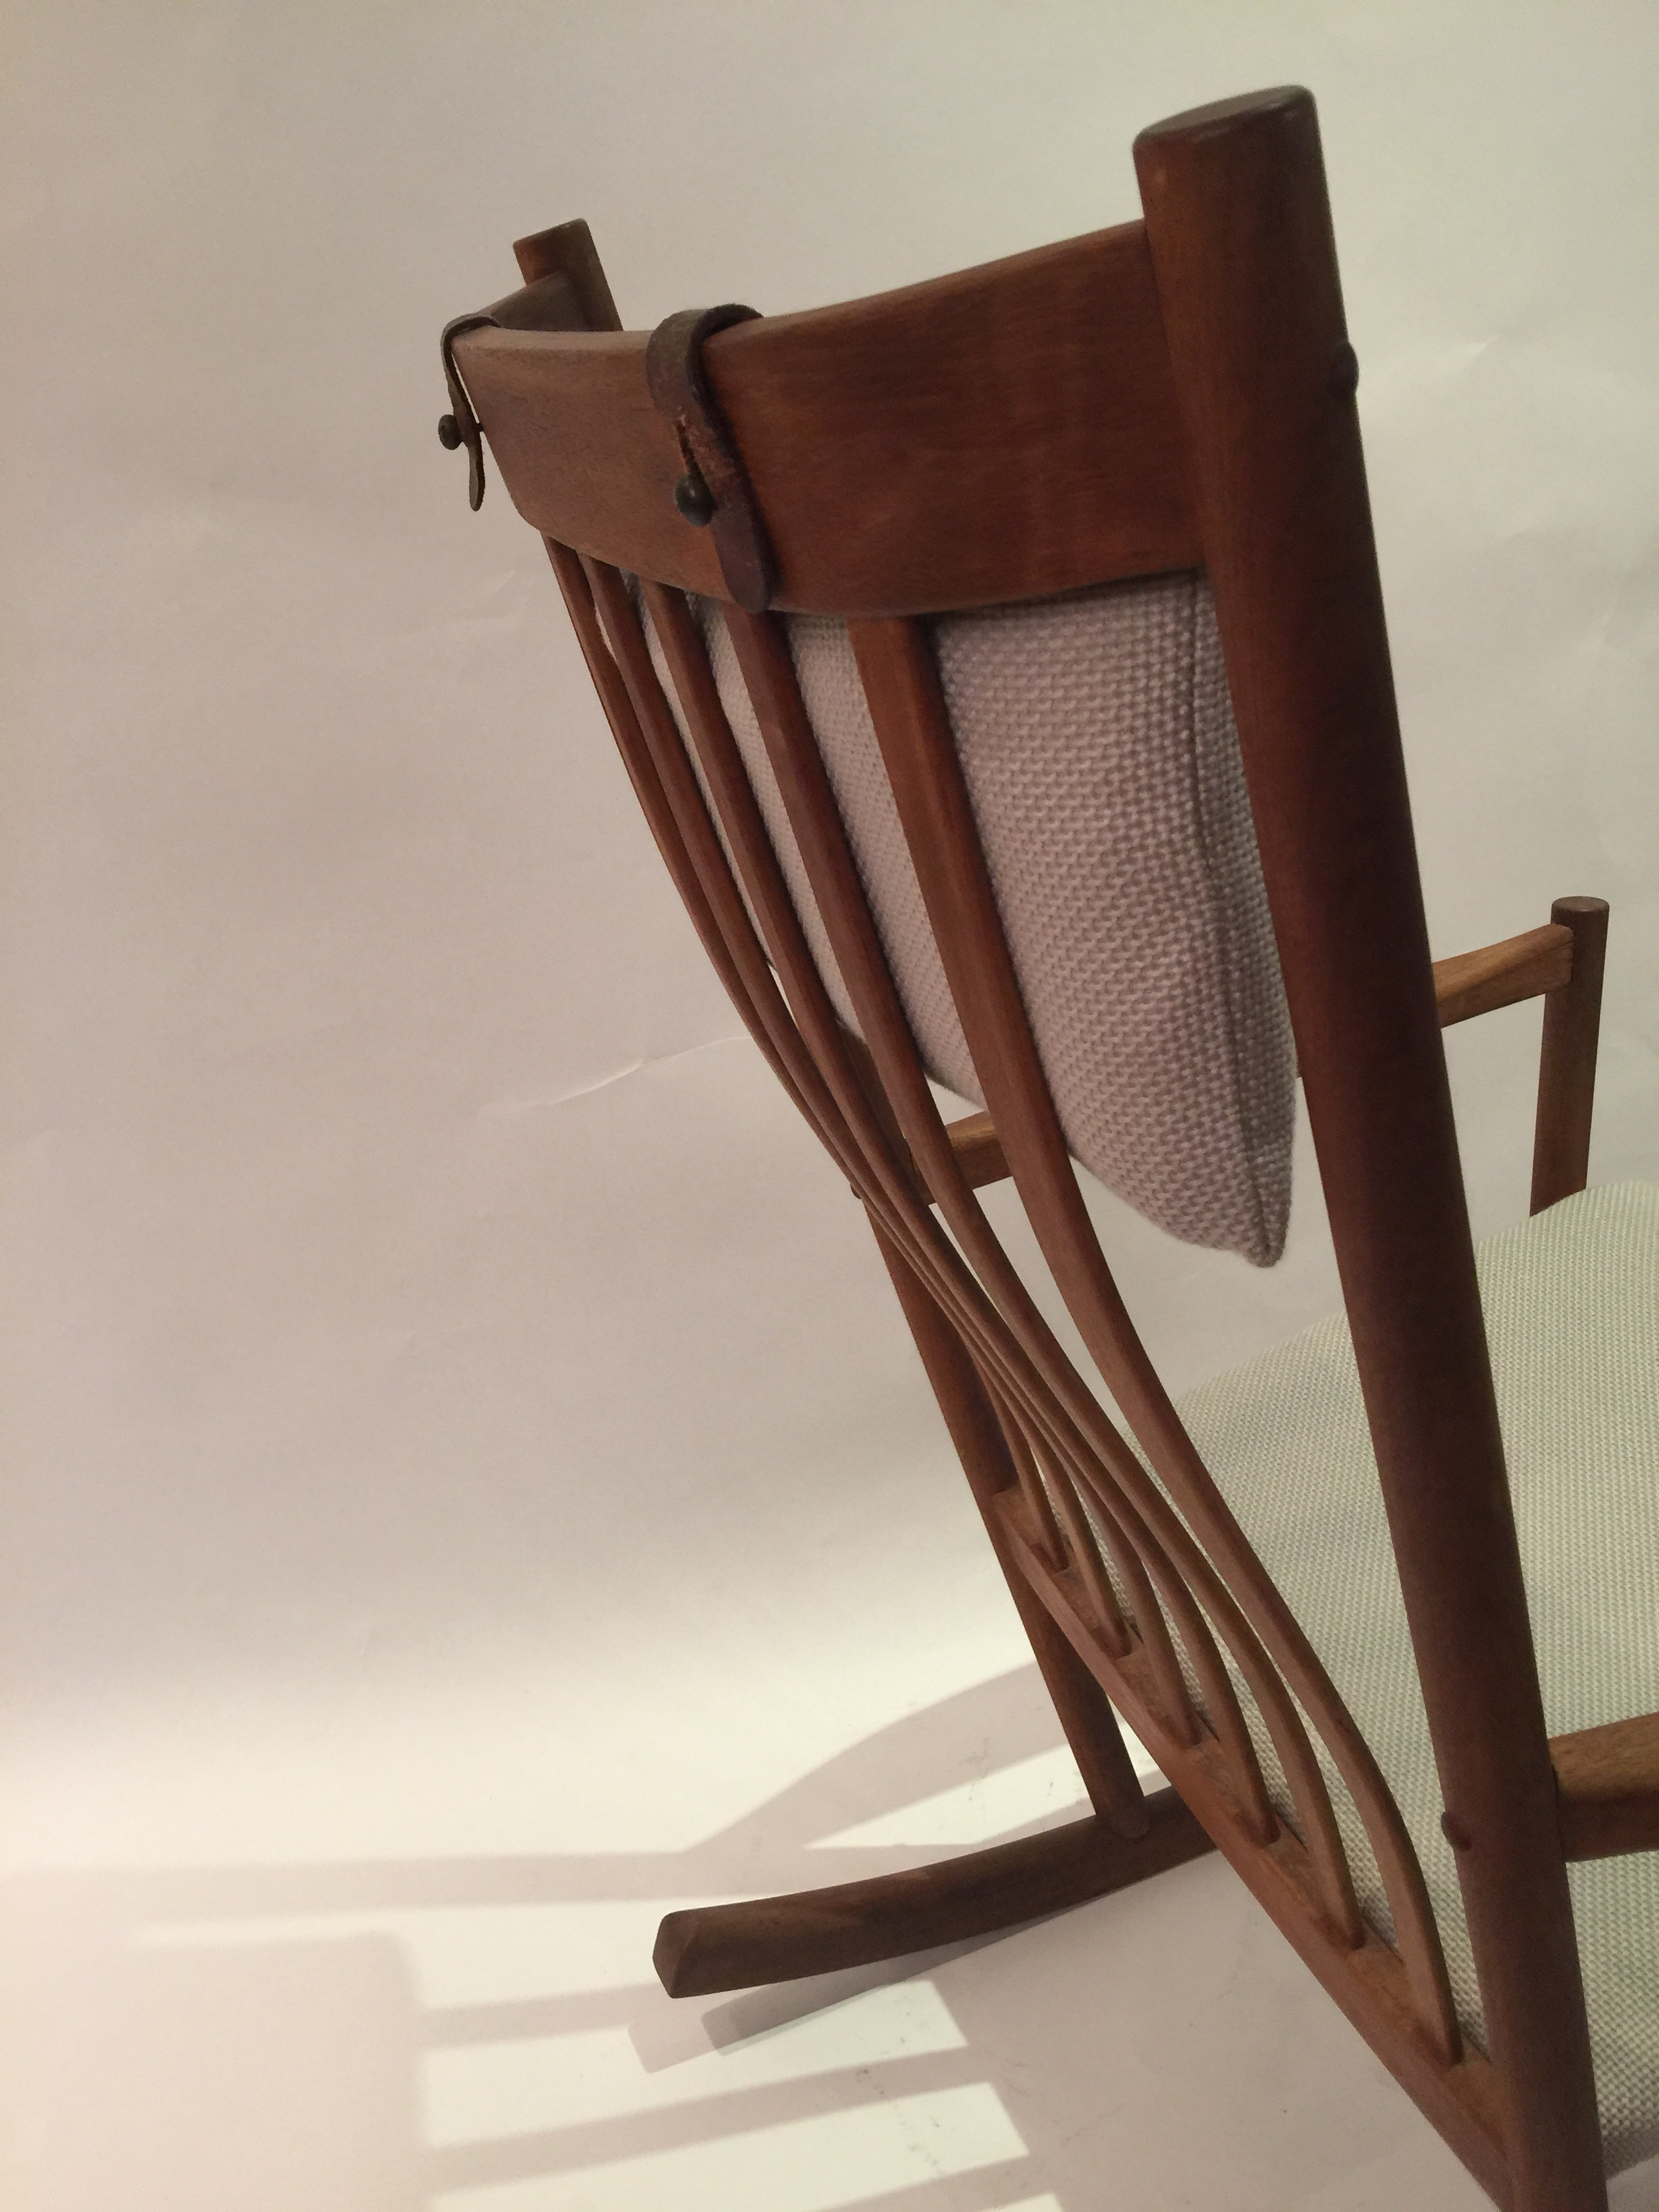 Wagner for Tram Stole - rocking chair 18.JPG